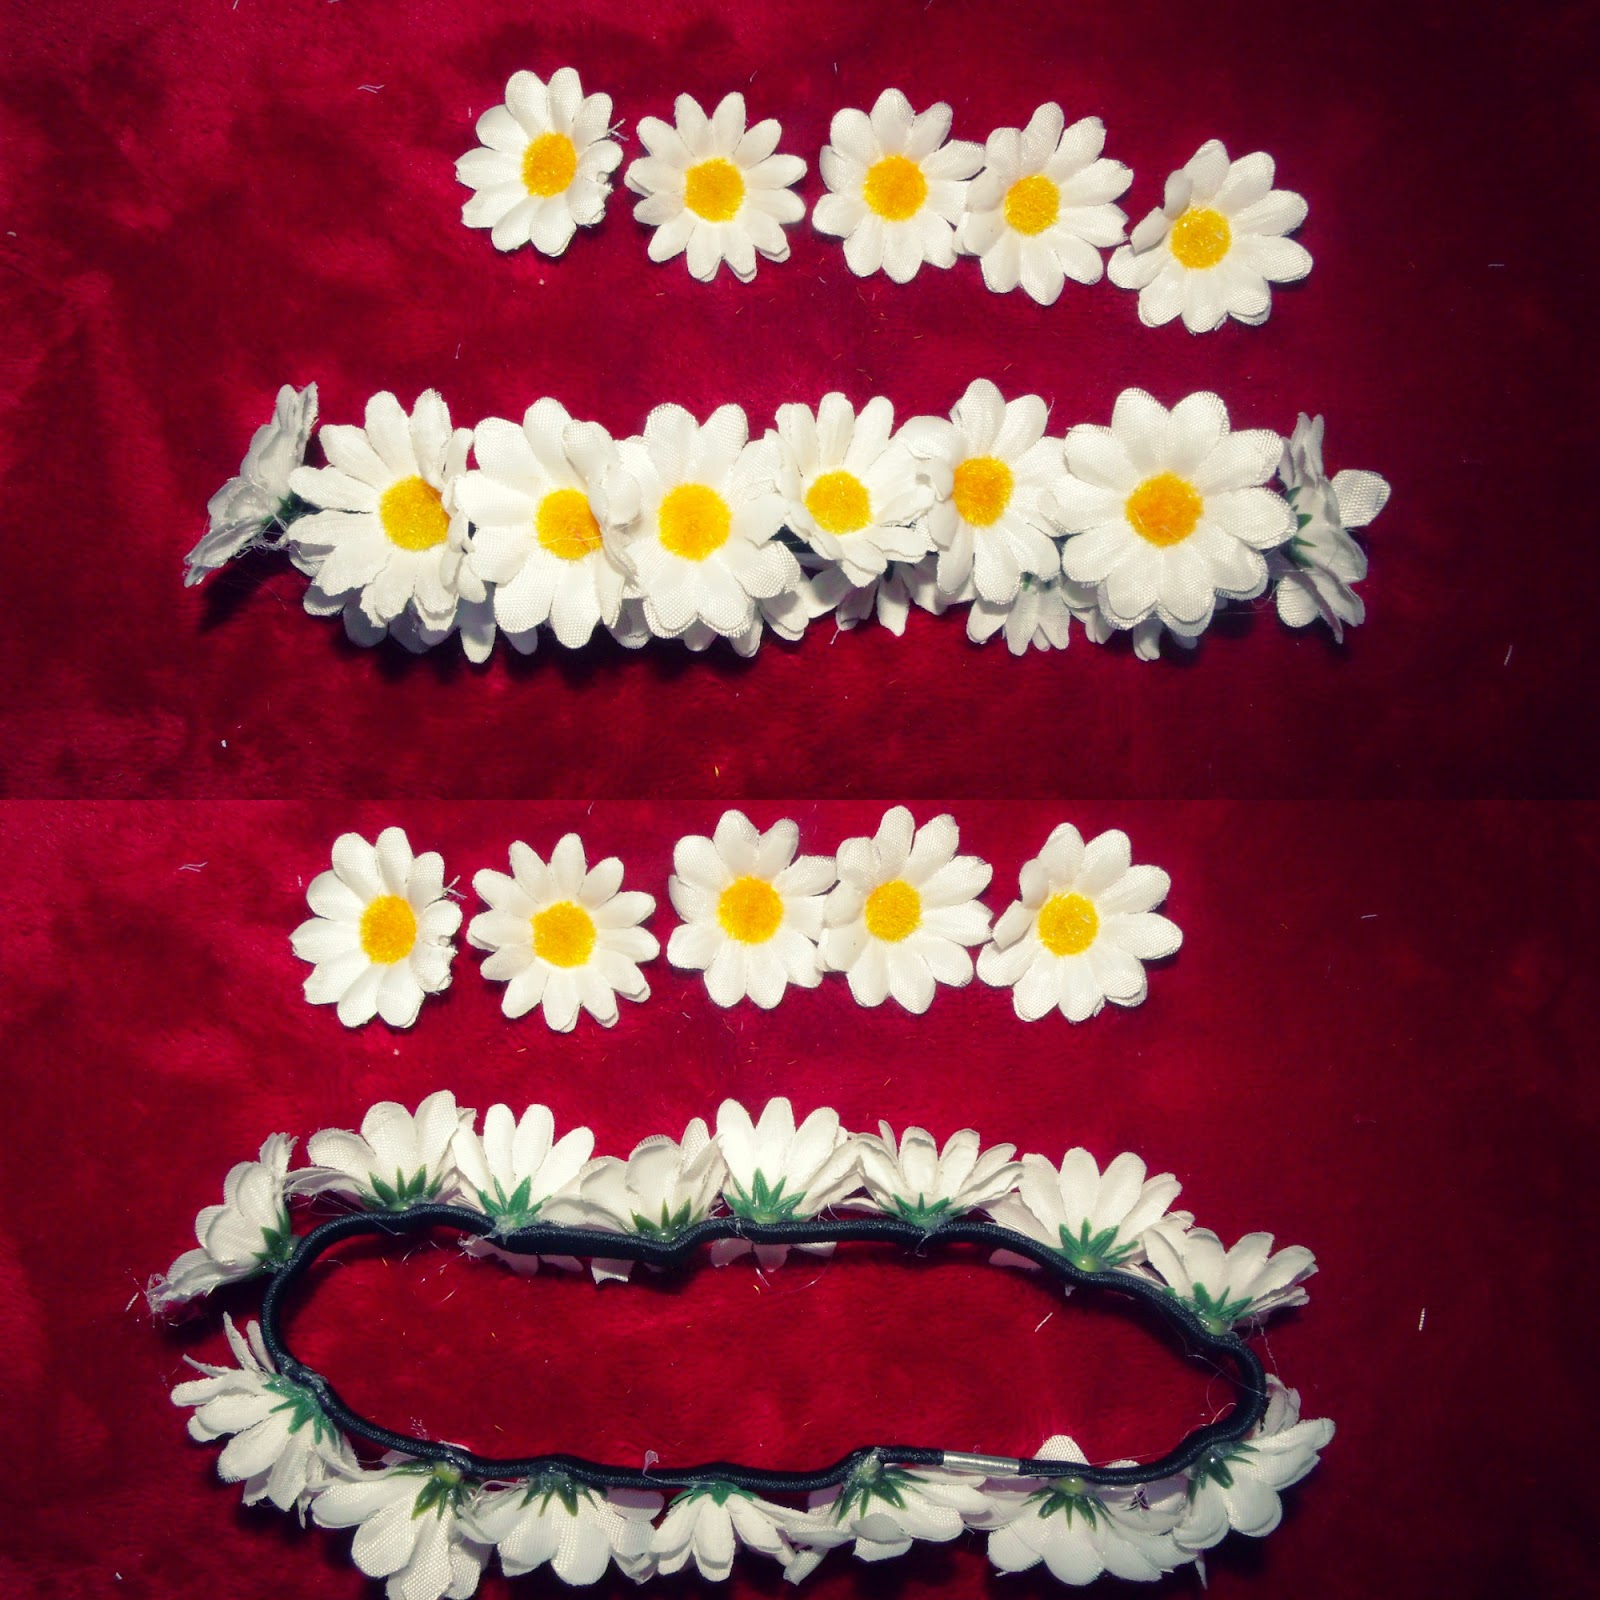 how to keep cut everlasting daisies